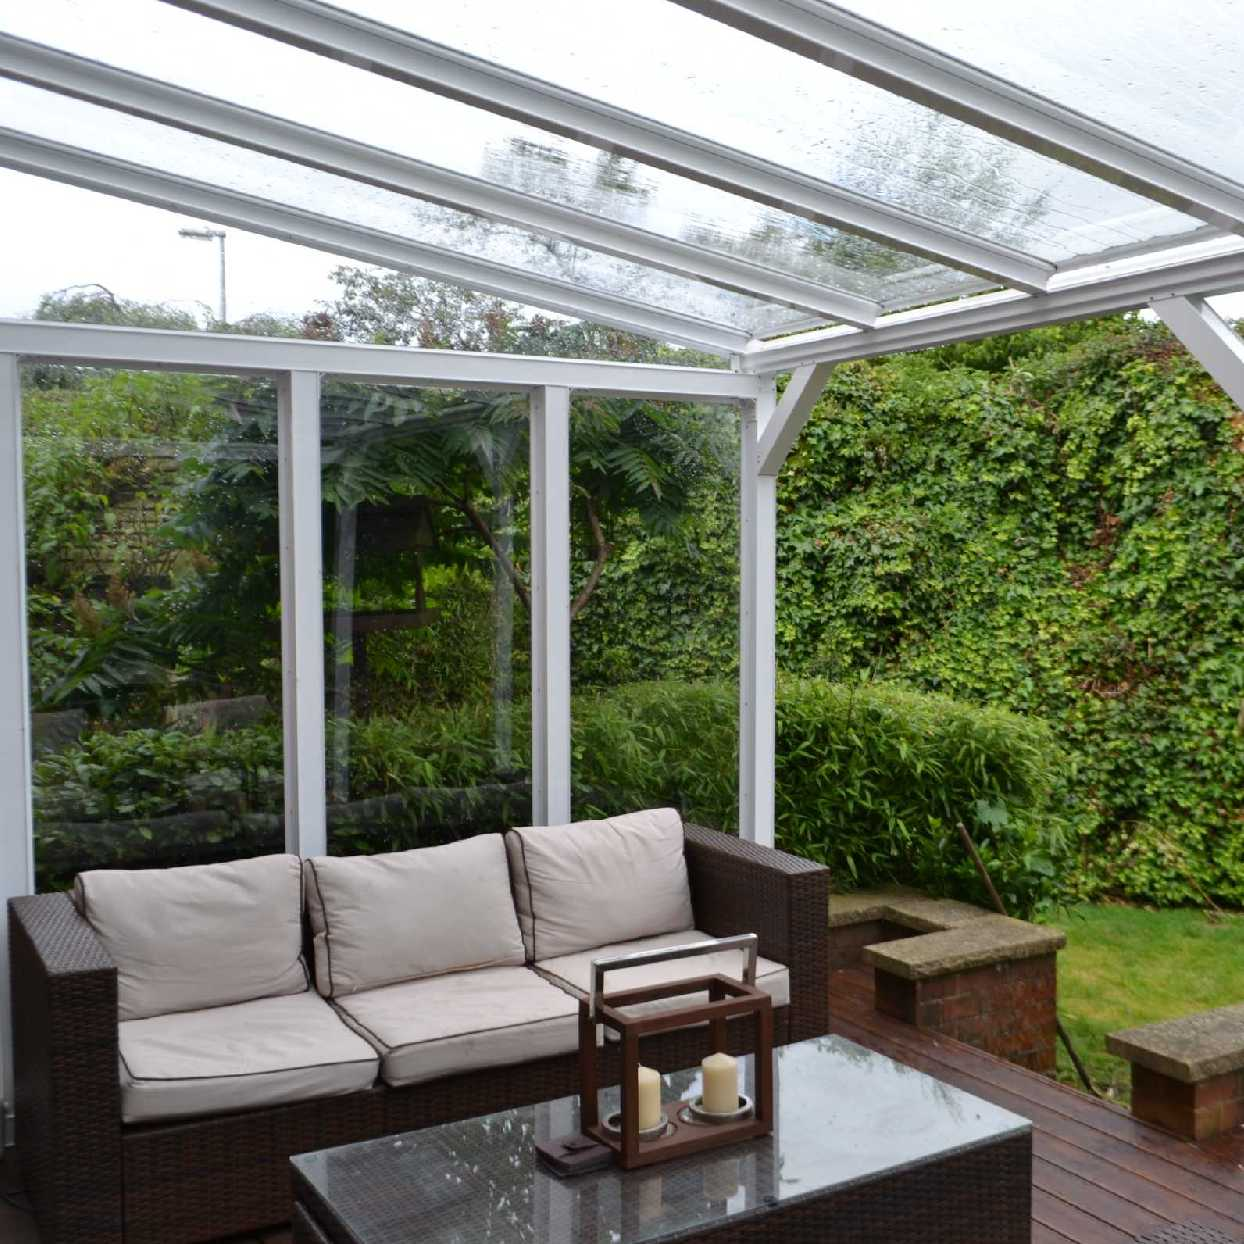 Omega Smart White Lean-To Canopy with 6mm Glass Clear Plate Polycarbonate Glazing - 4.9m (W) x 3.0m (P), (3) Supporting Posts